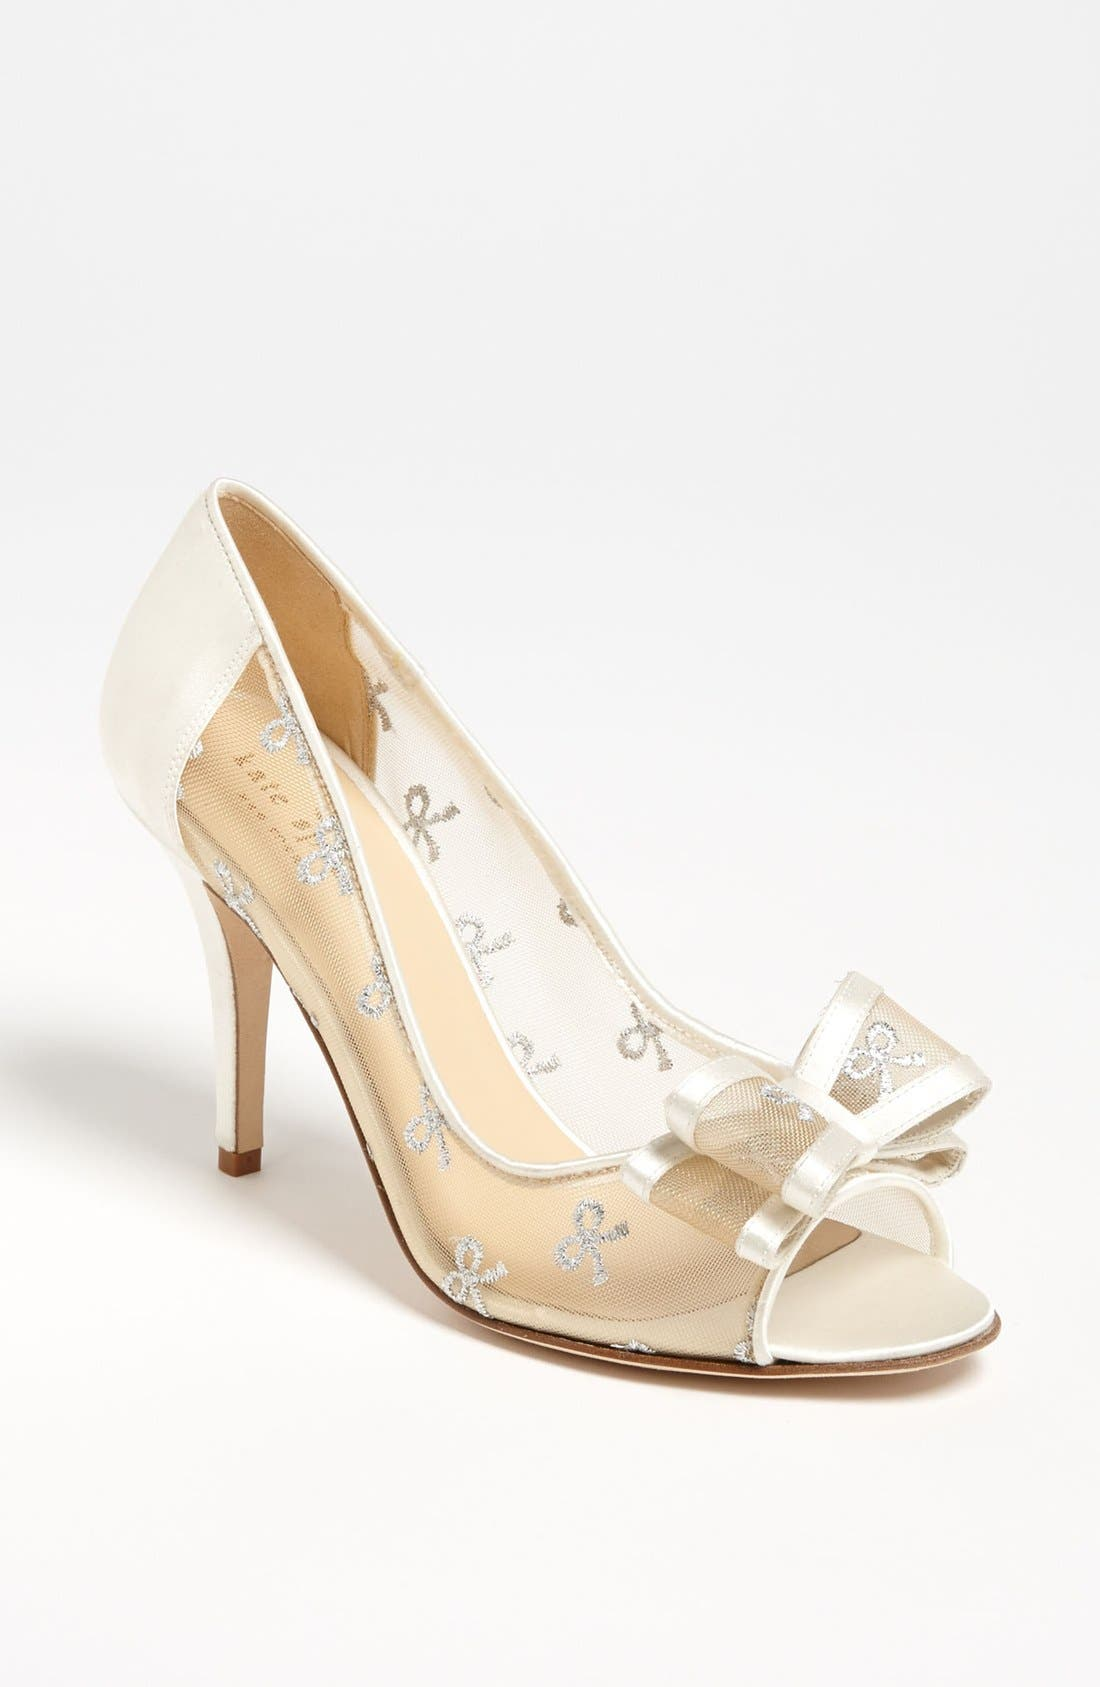 Main Image - kate spade new york 'calina' pump